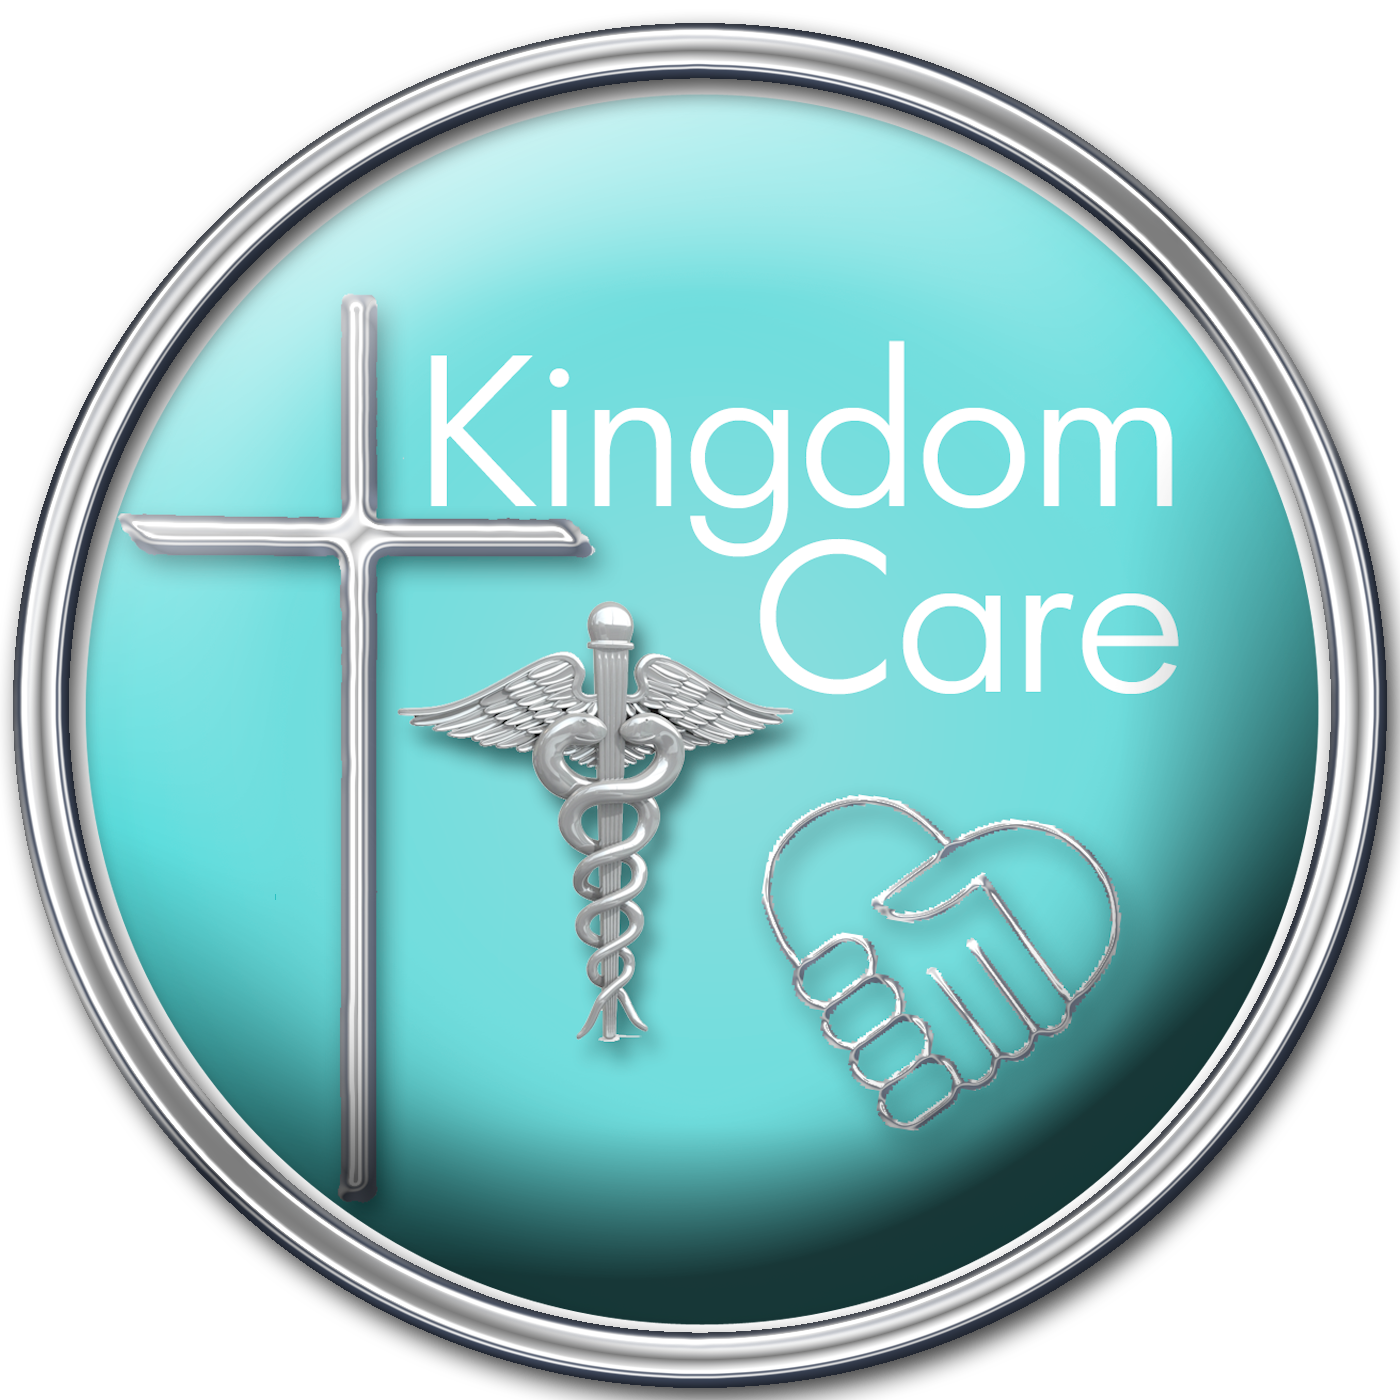 Kingdom Care Medical, Dental and Vision Care Clinic